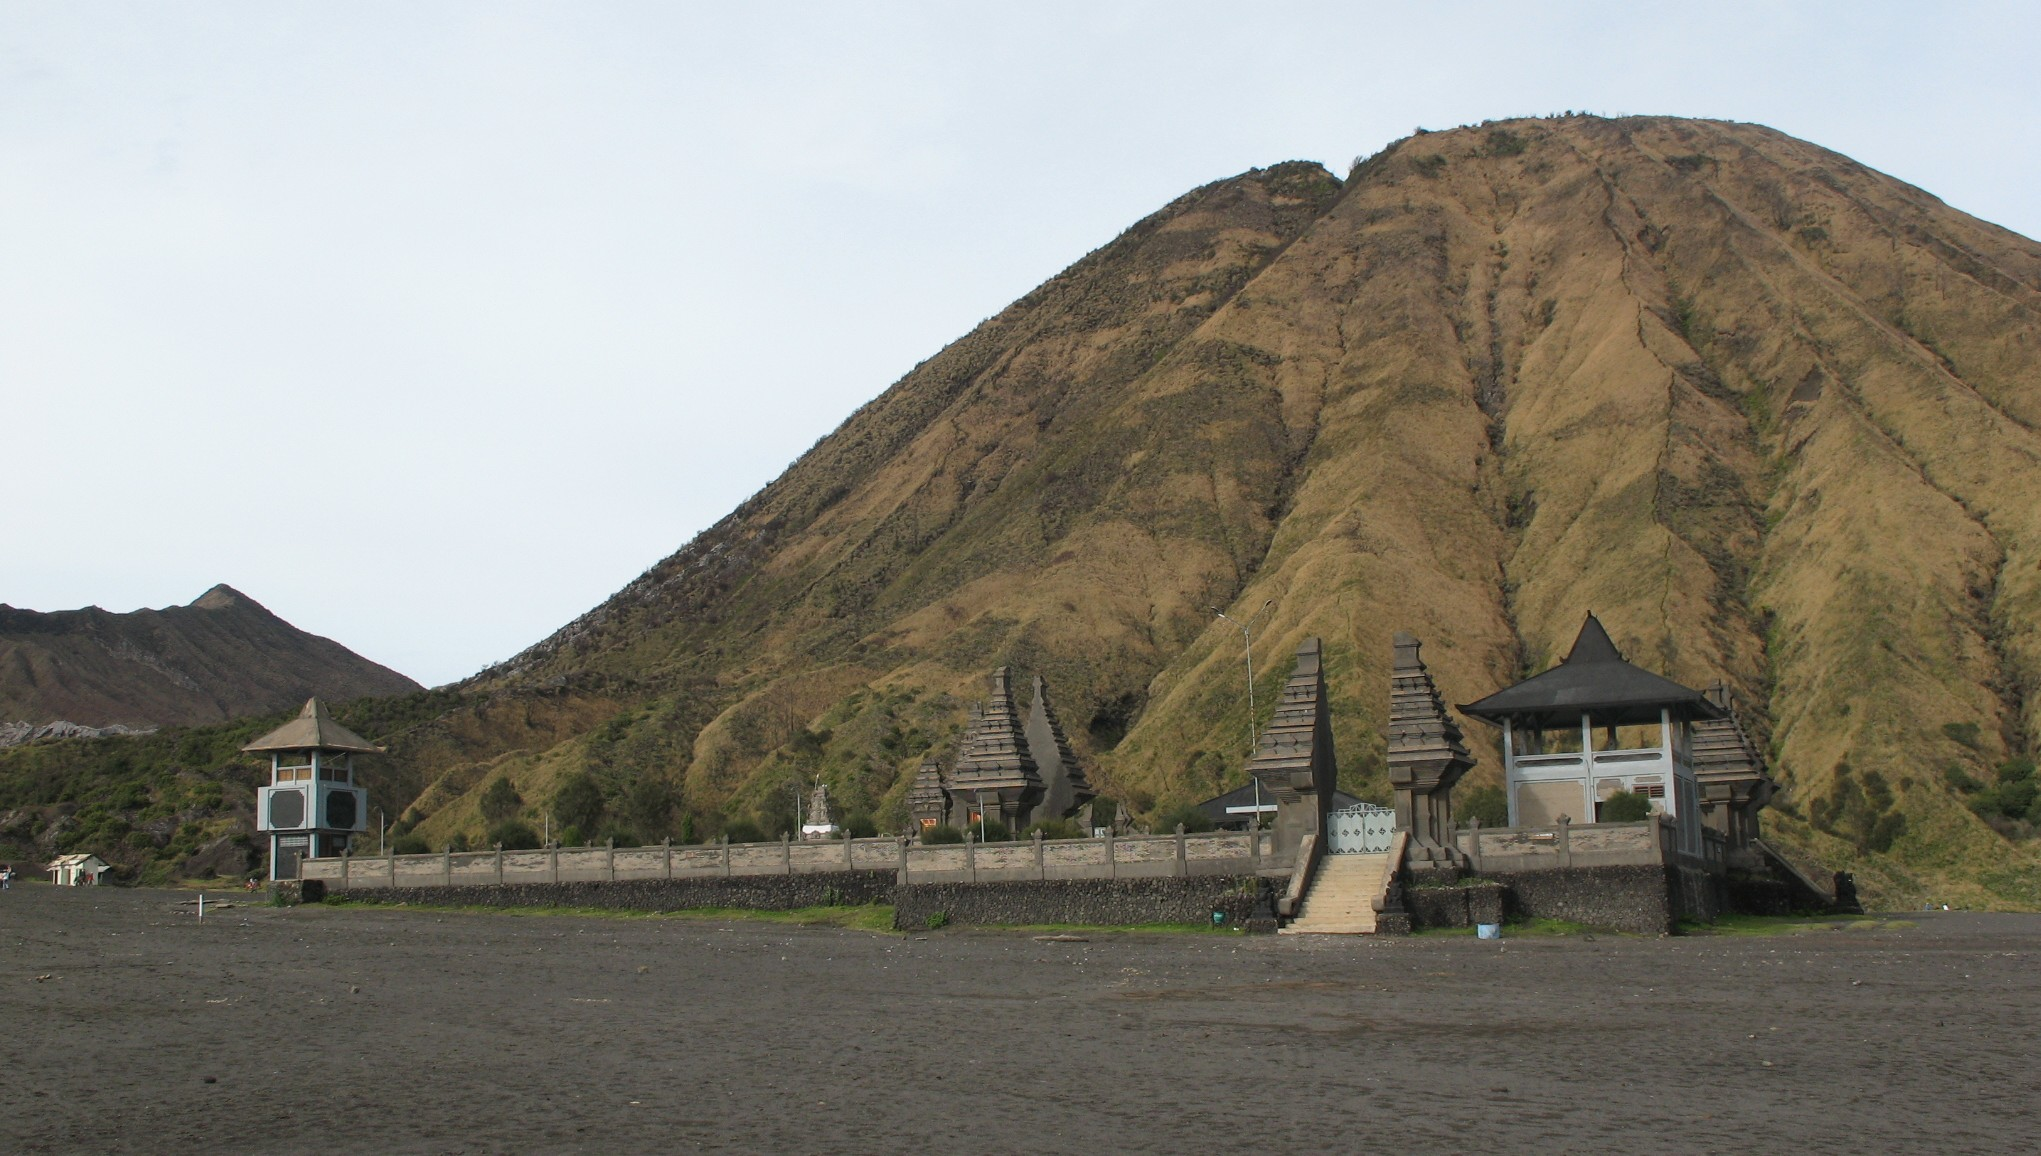 http://appleyardz.files.wordpress.com/2010/12/pura-bromo.jpg